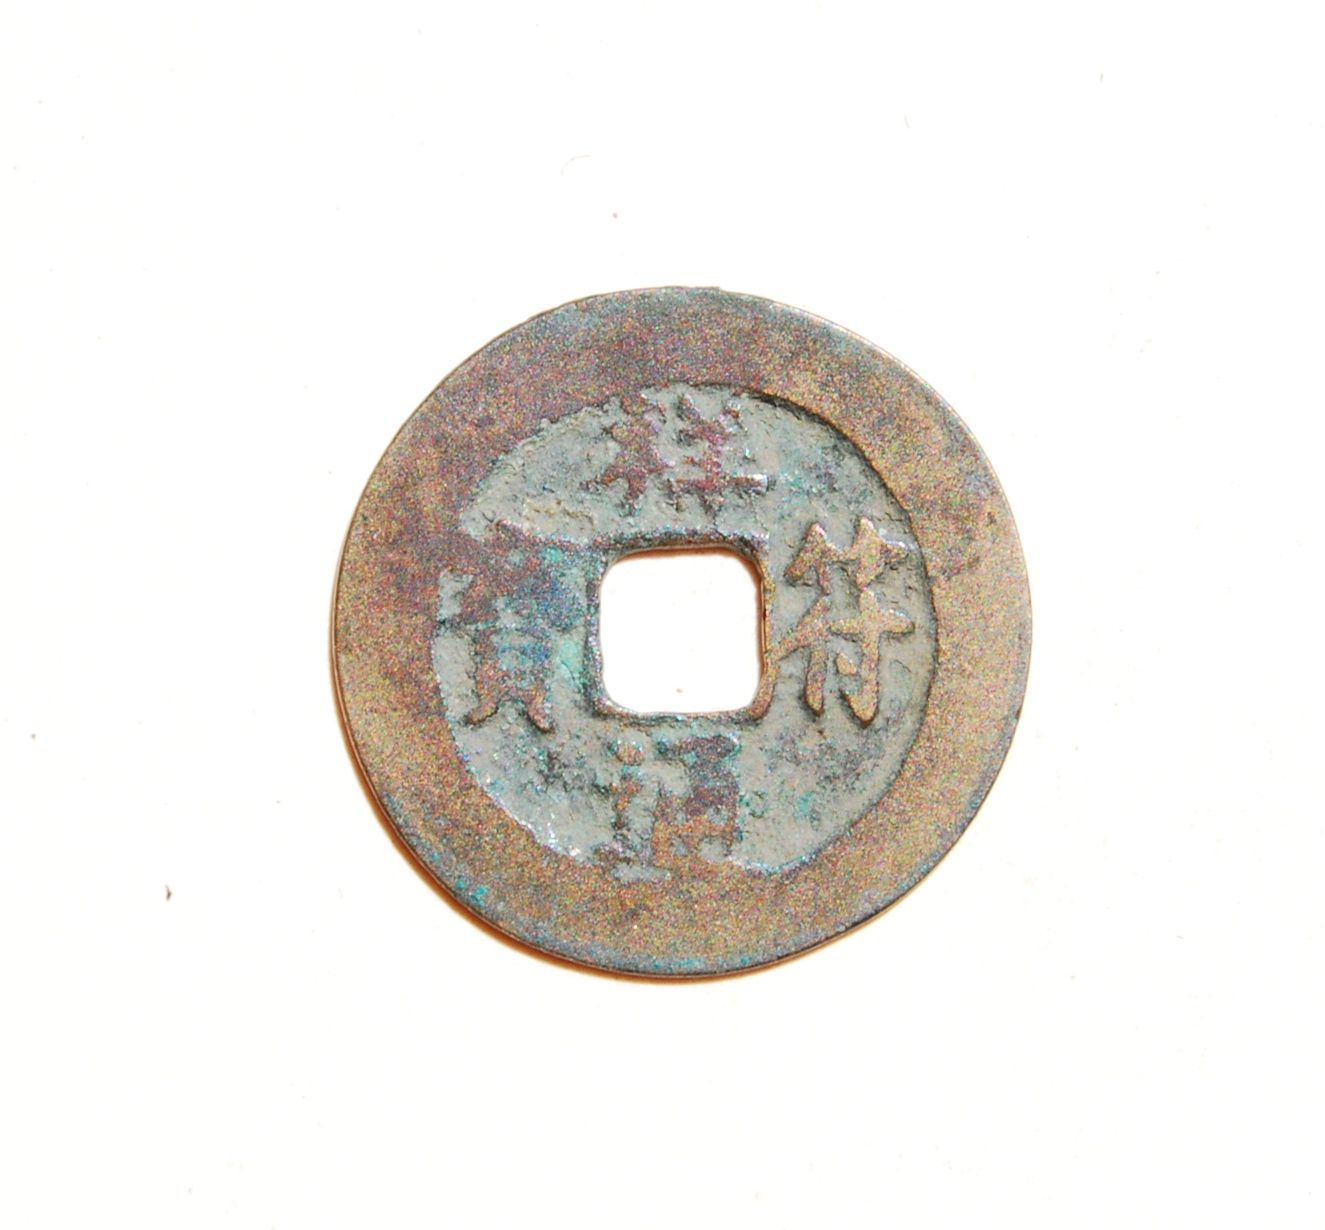 254a. Obverse side of a Xiang ...